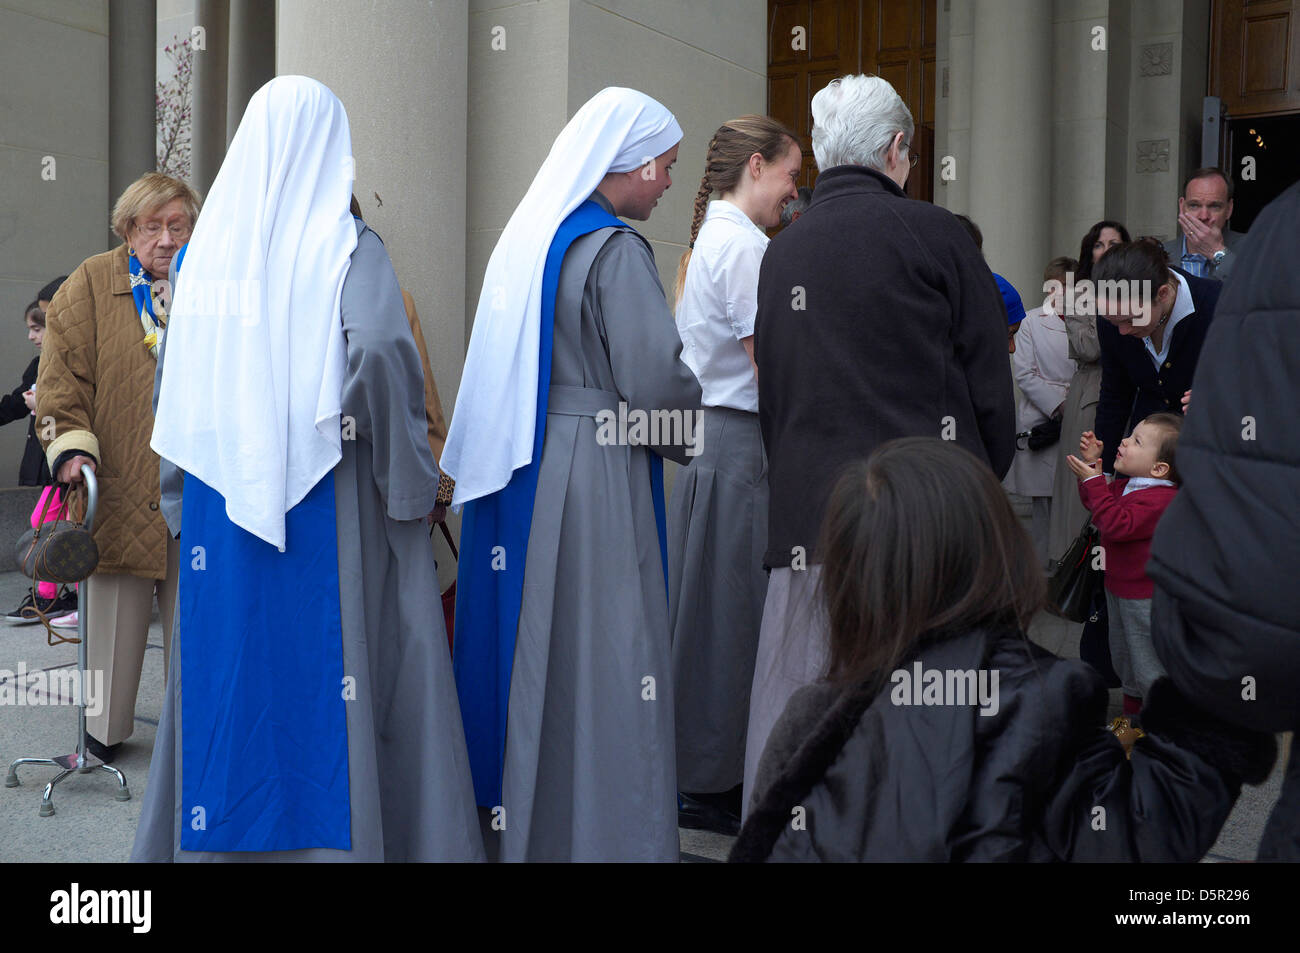 Nuns and churchgoers outside the Basilica of the National Shrine of the Immaculate Conception in Washington DC on Stock Photo